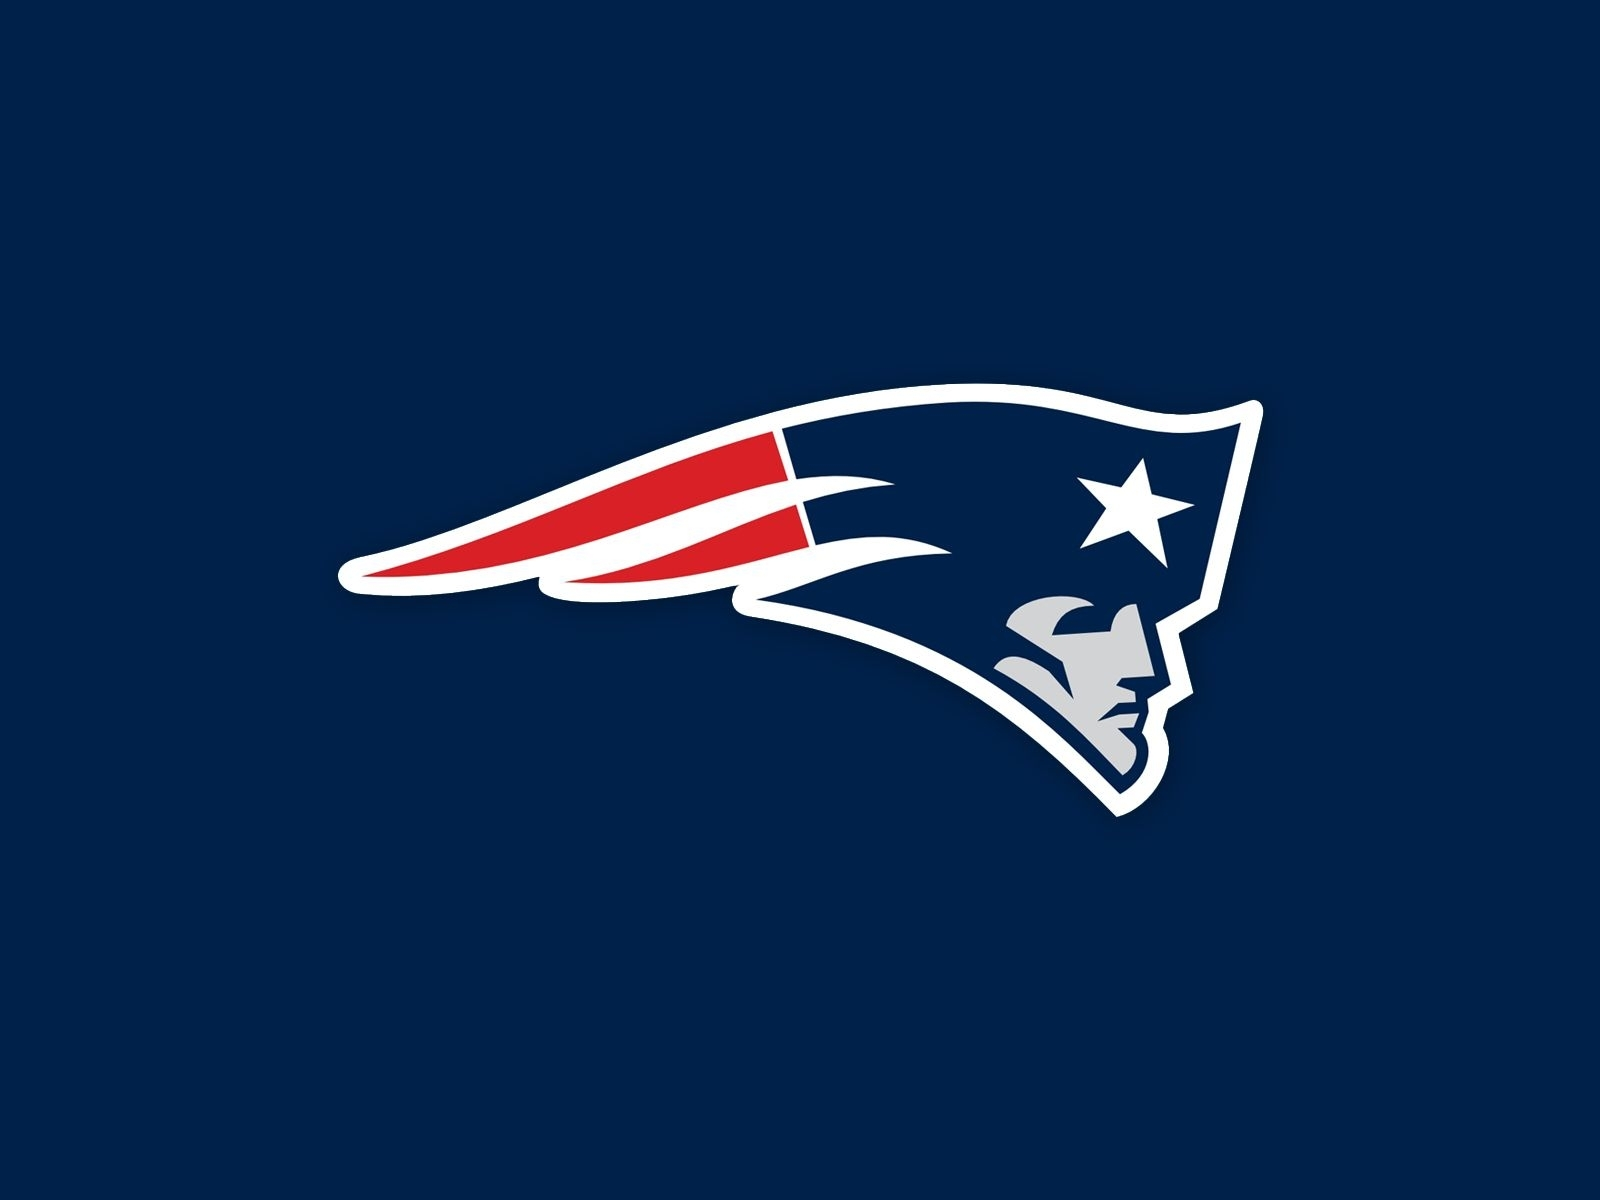 new england patriots logo wallpaper (1600 x 1200)sportsgeekery